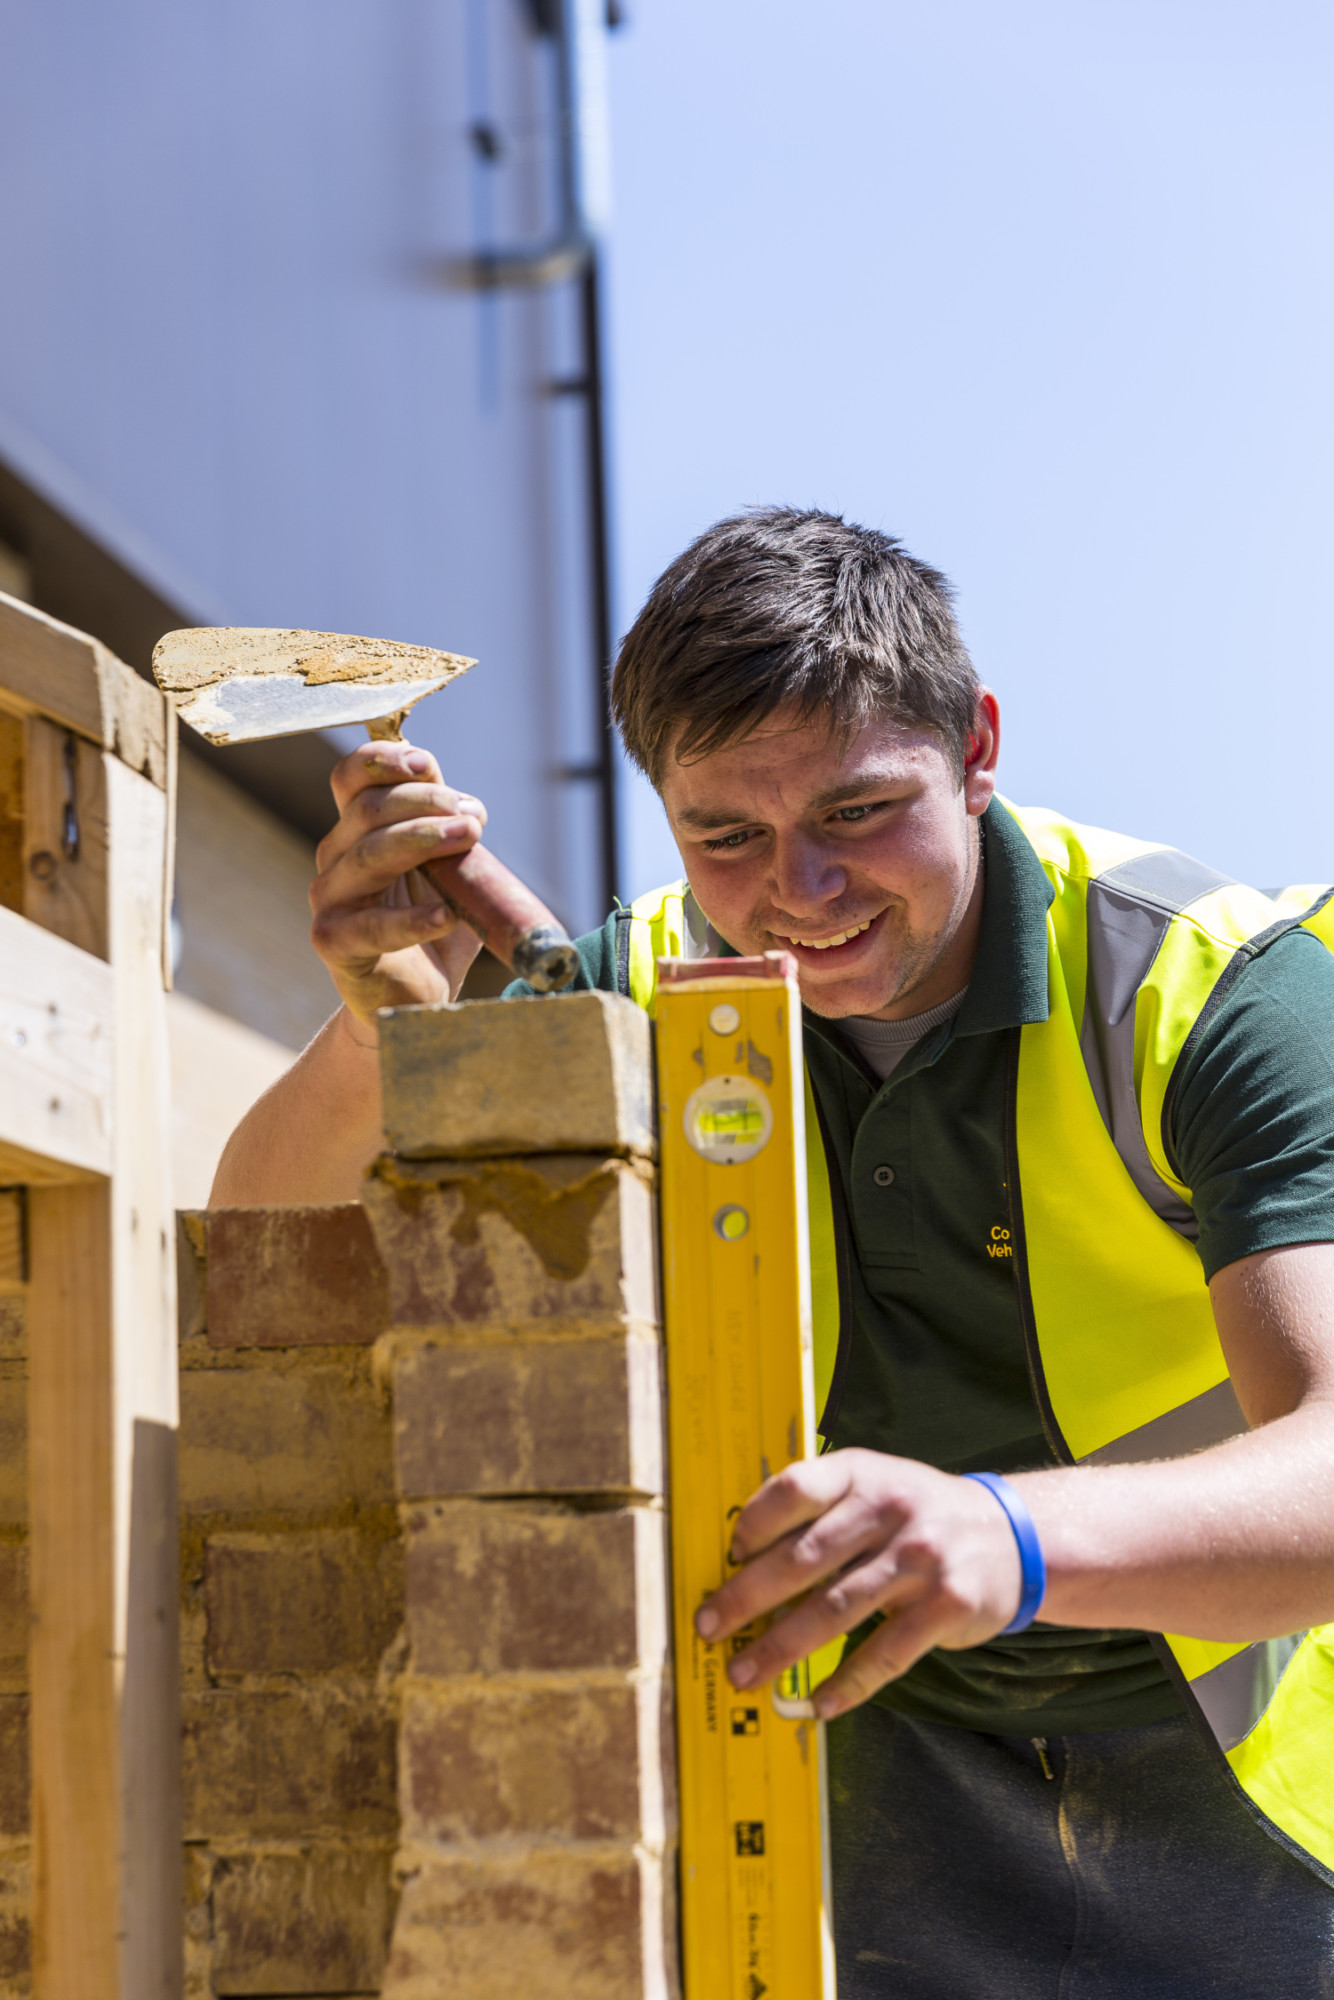 Jordan-Wallis-Brickwork-Apprentice-Case-Study-24